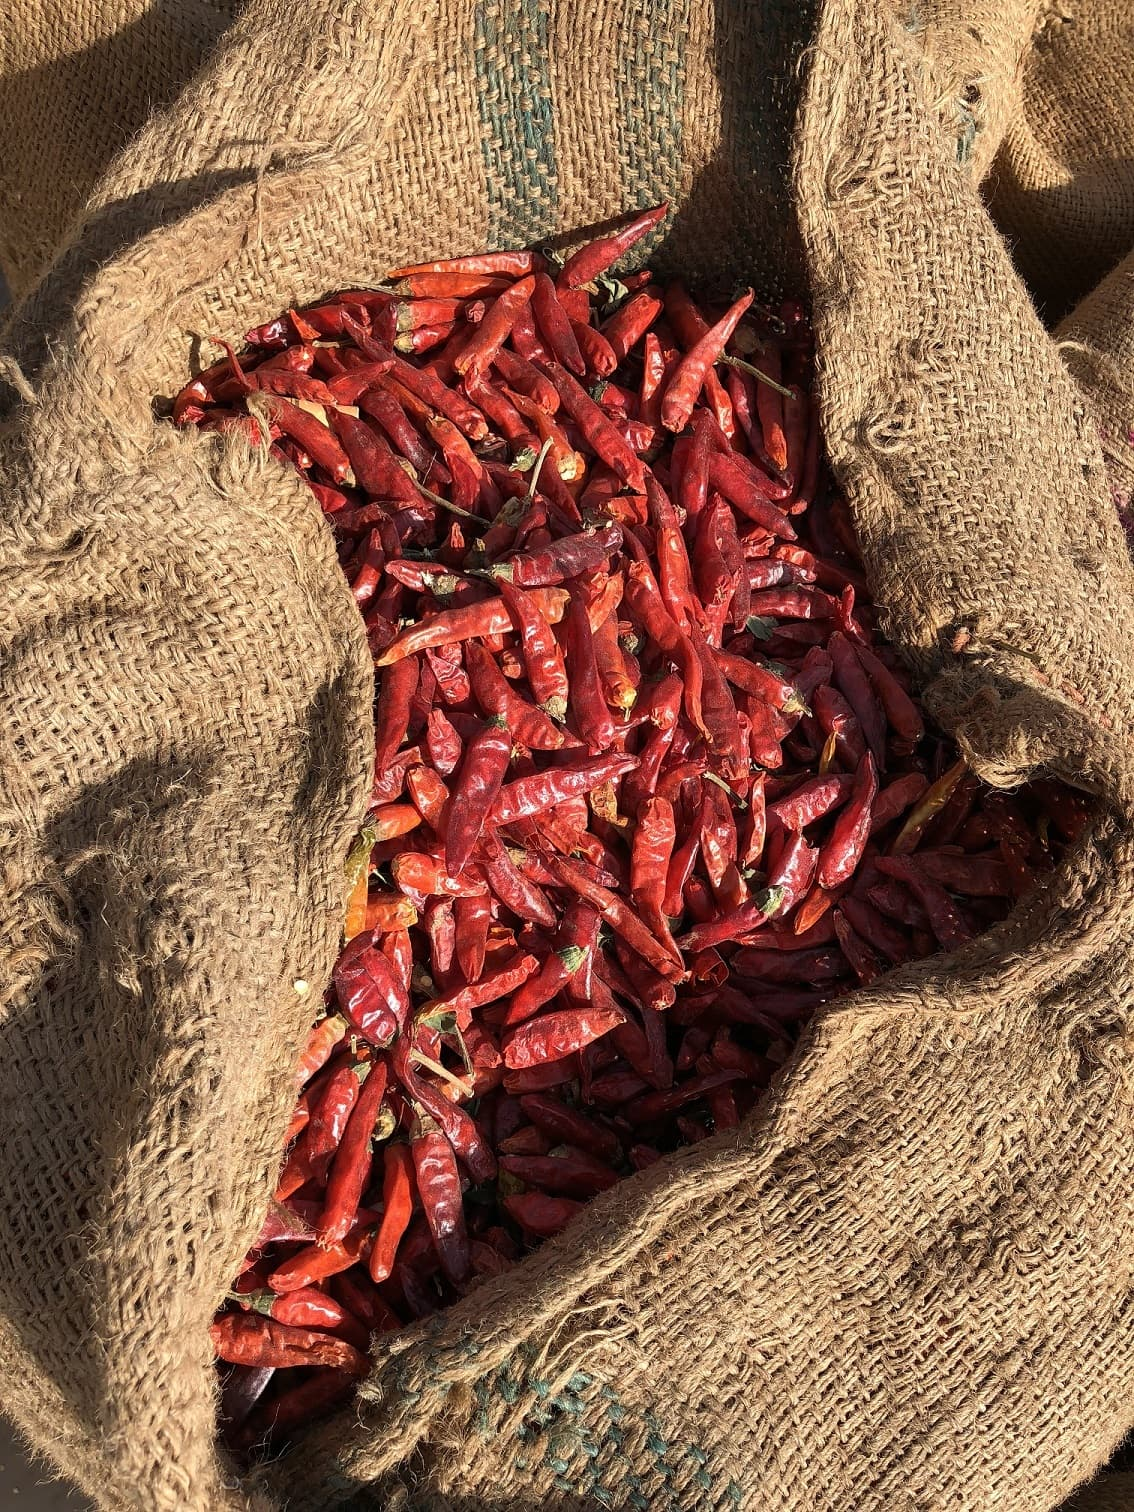 Chilli production has plummeted because of a lack of water for irrigation.